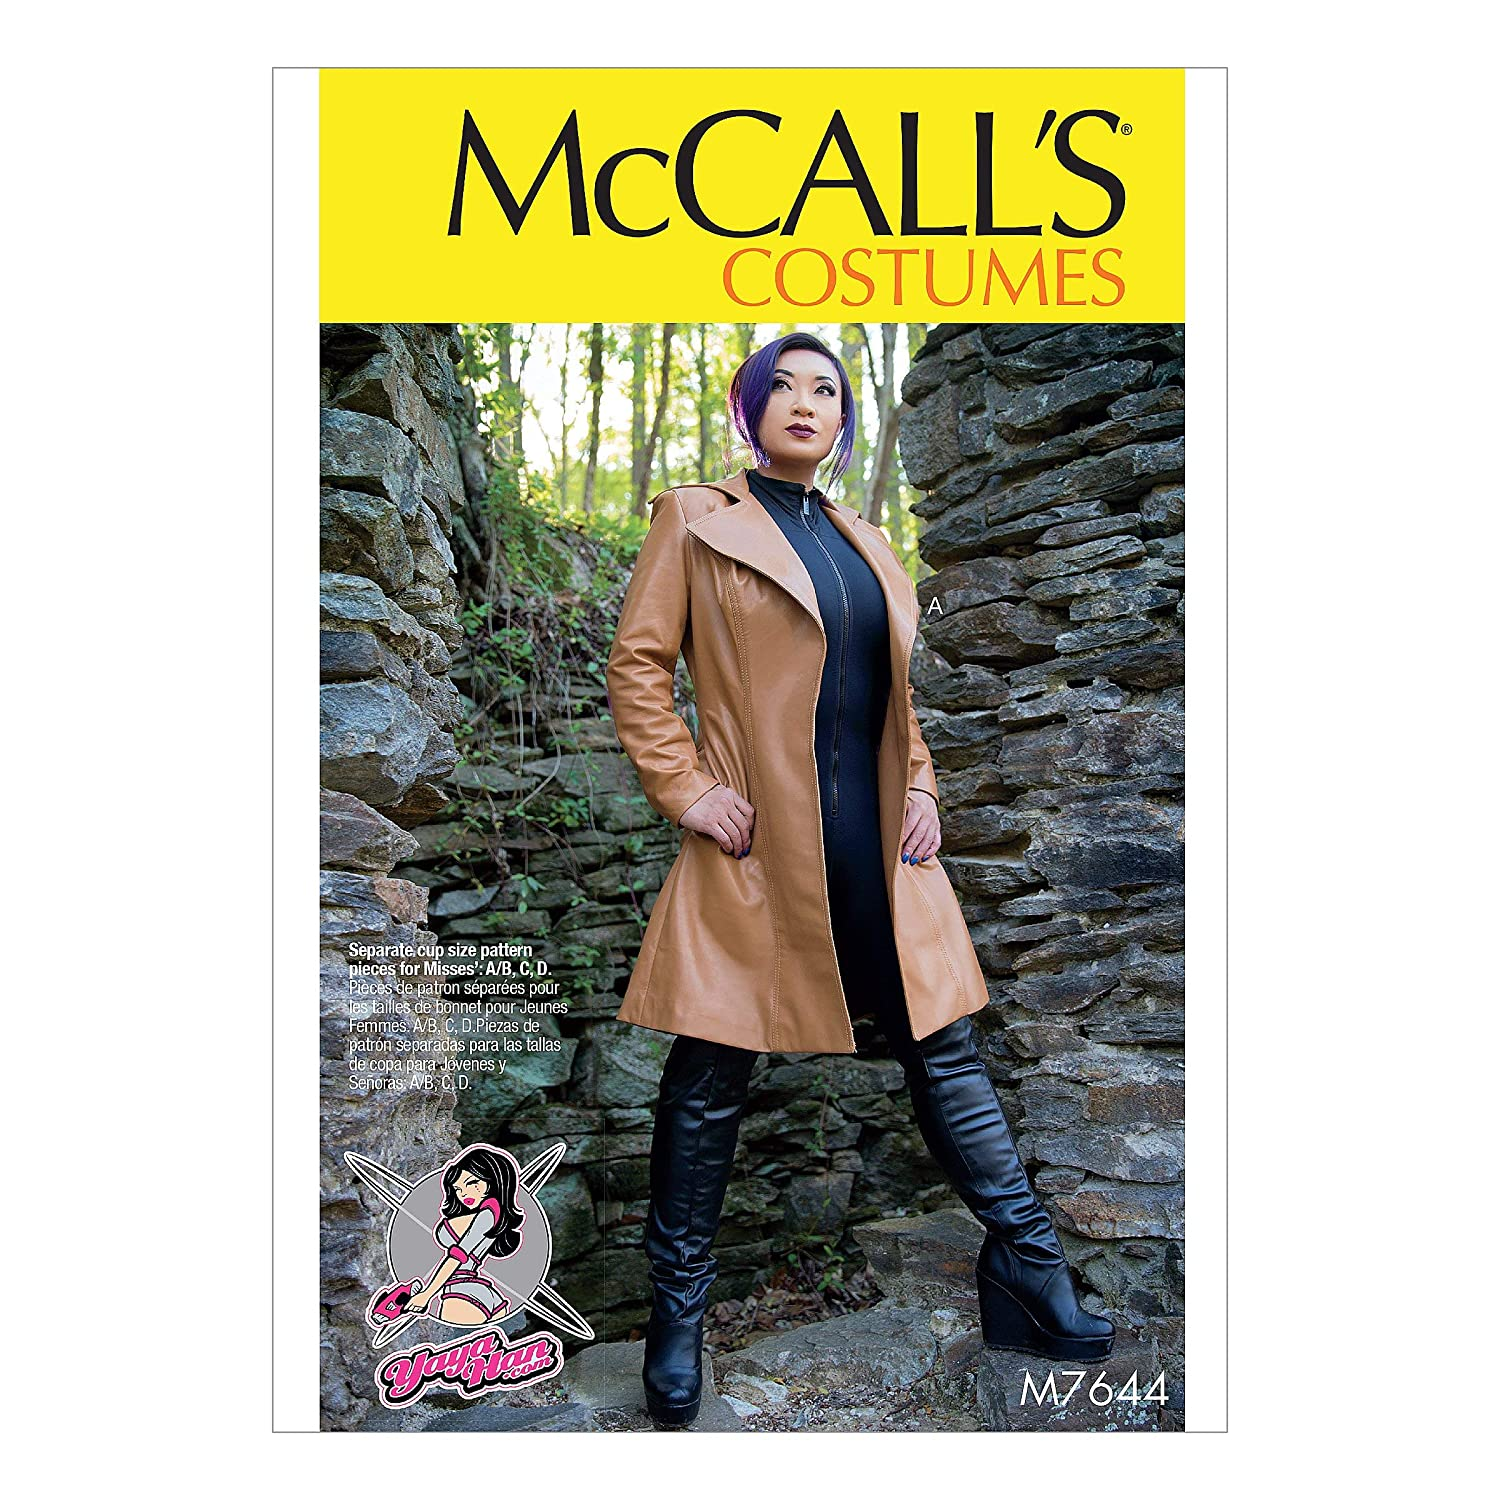 Amazon.com: McCalls Patterns M7644A50 Leather Jacket Cosplay Costume Sewing Pattern for Women by Yaya Han, Sizes 6-14: Arts, Crafts & Sewing